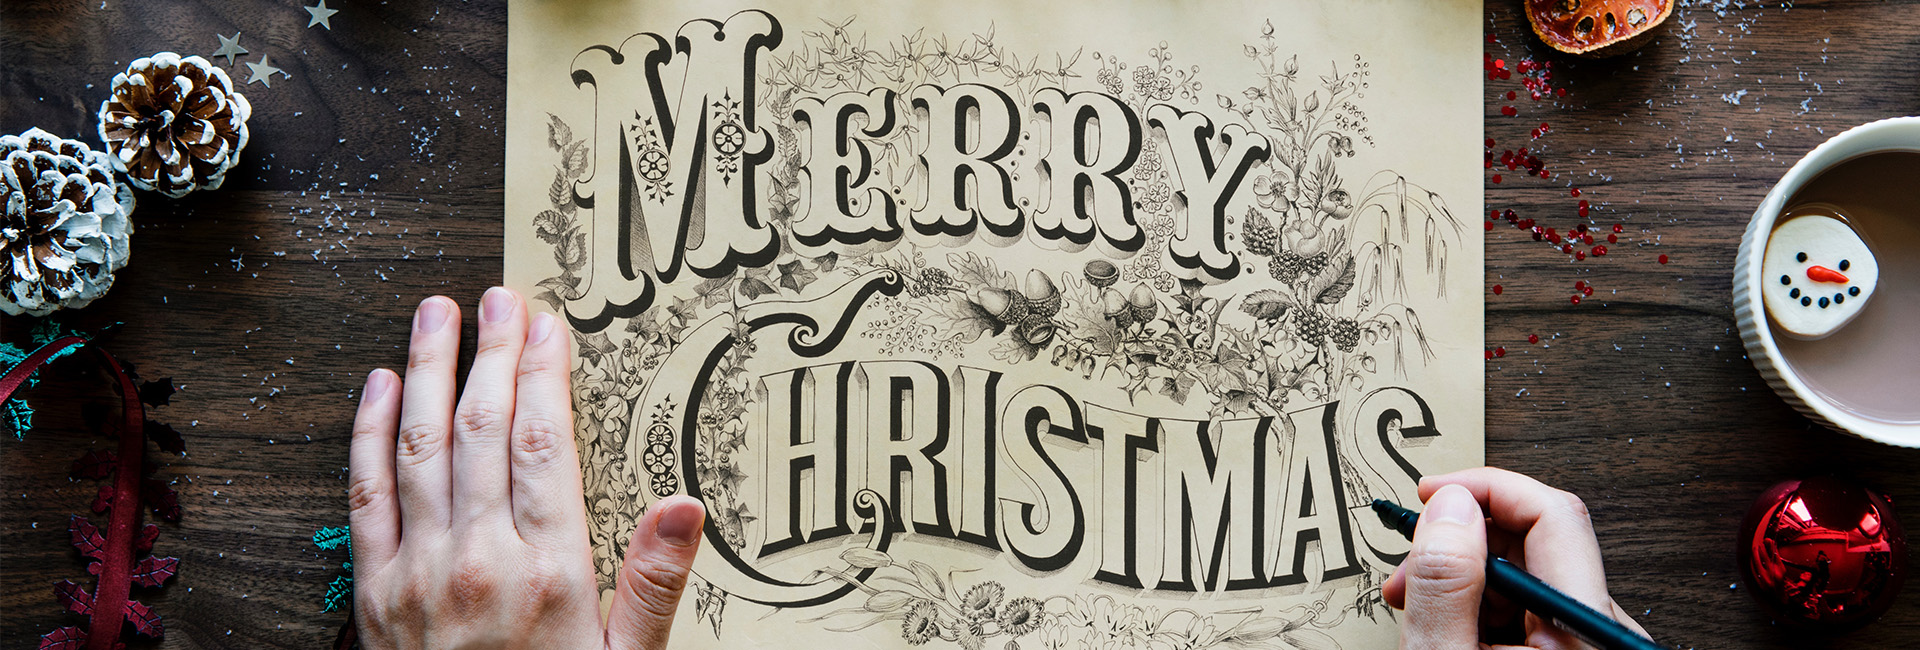 Merry Christmas Handwritten Design on Paper